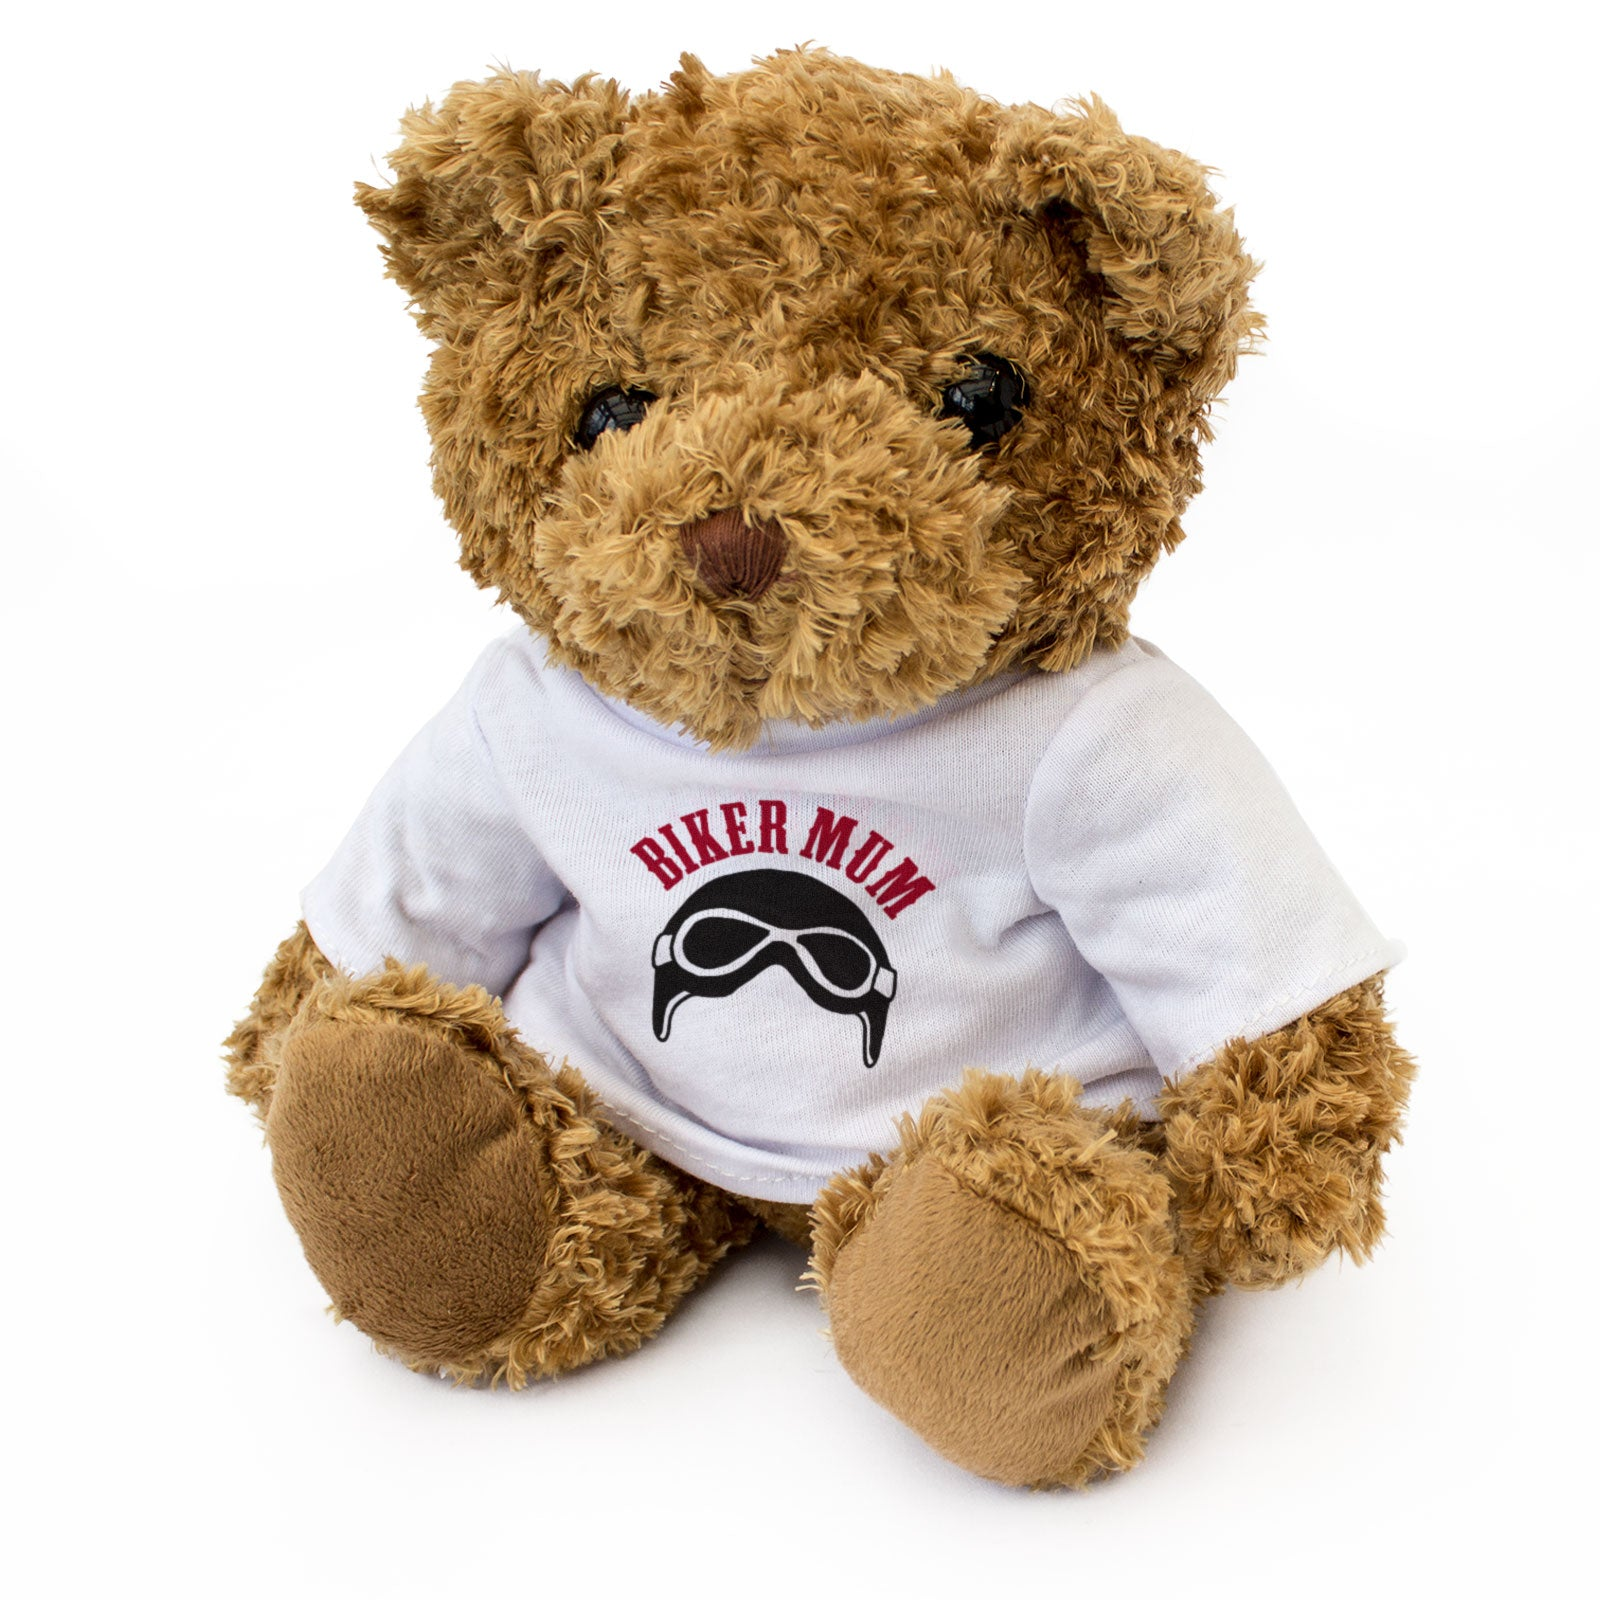 Biker Mum Teddy Bear Christmas Birthday Gift